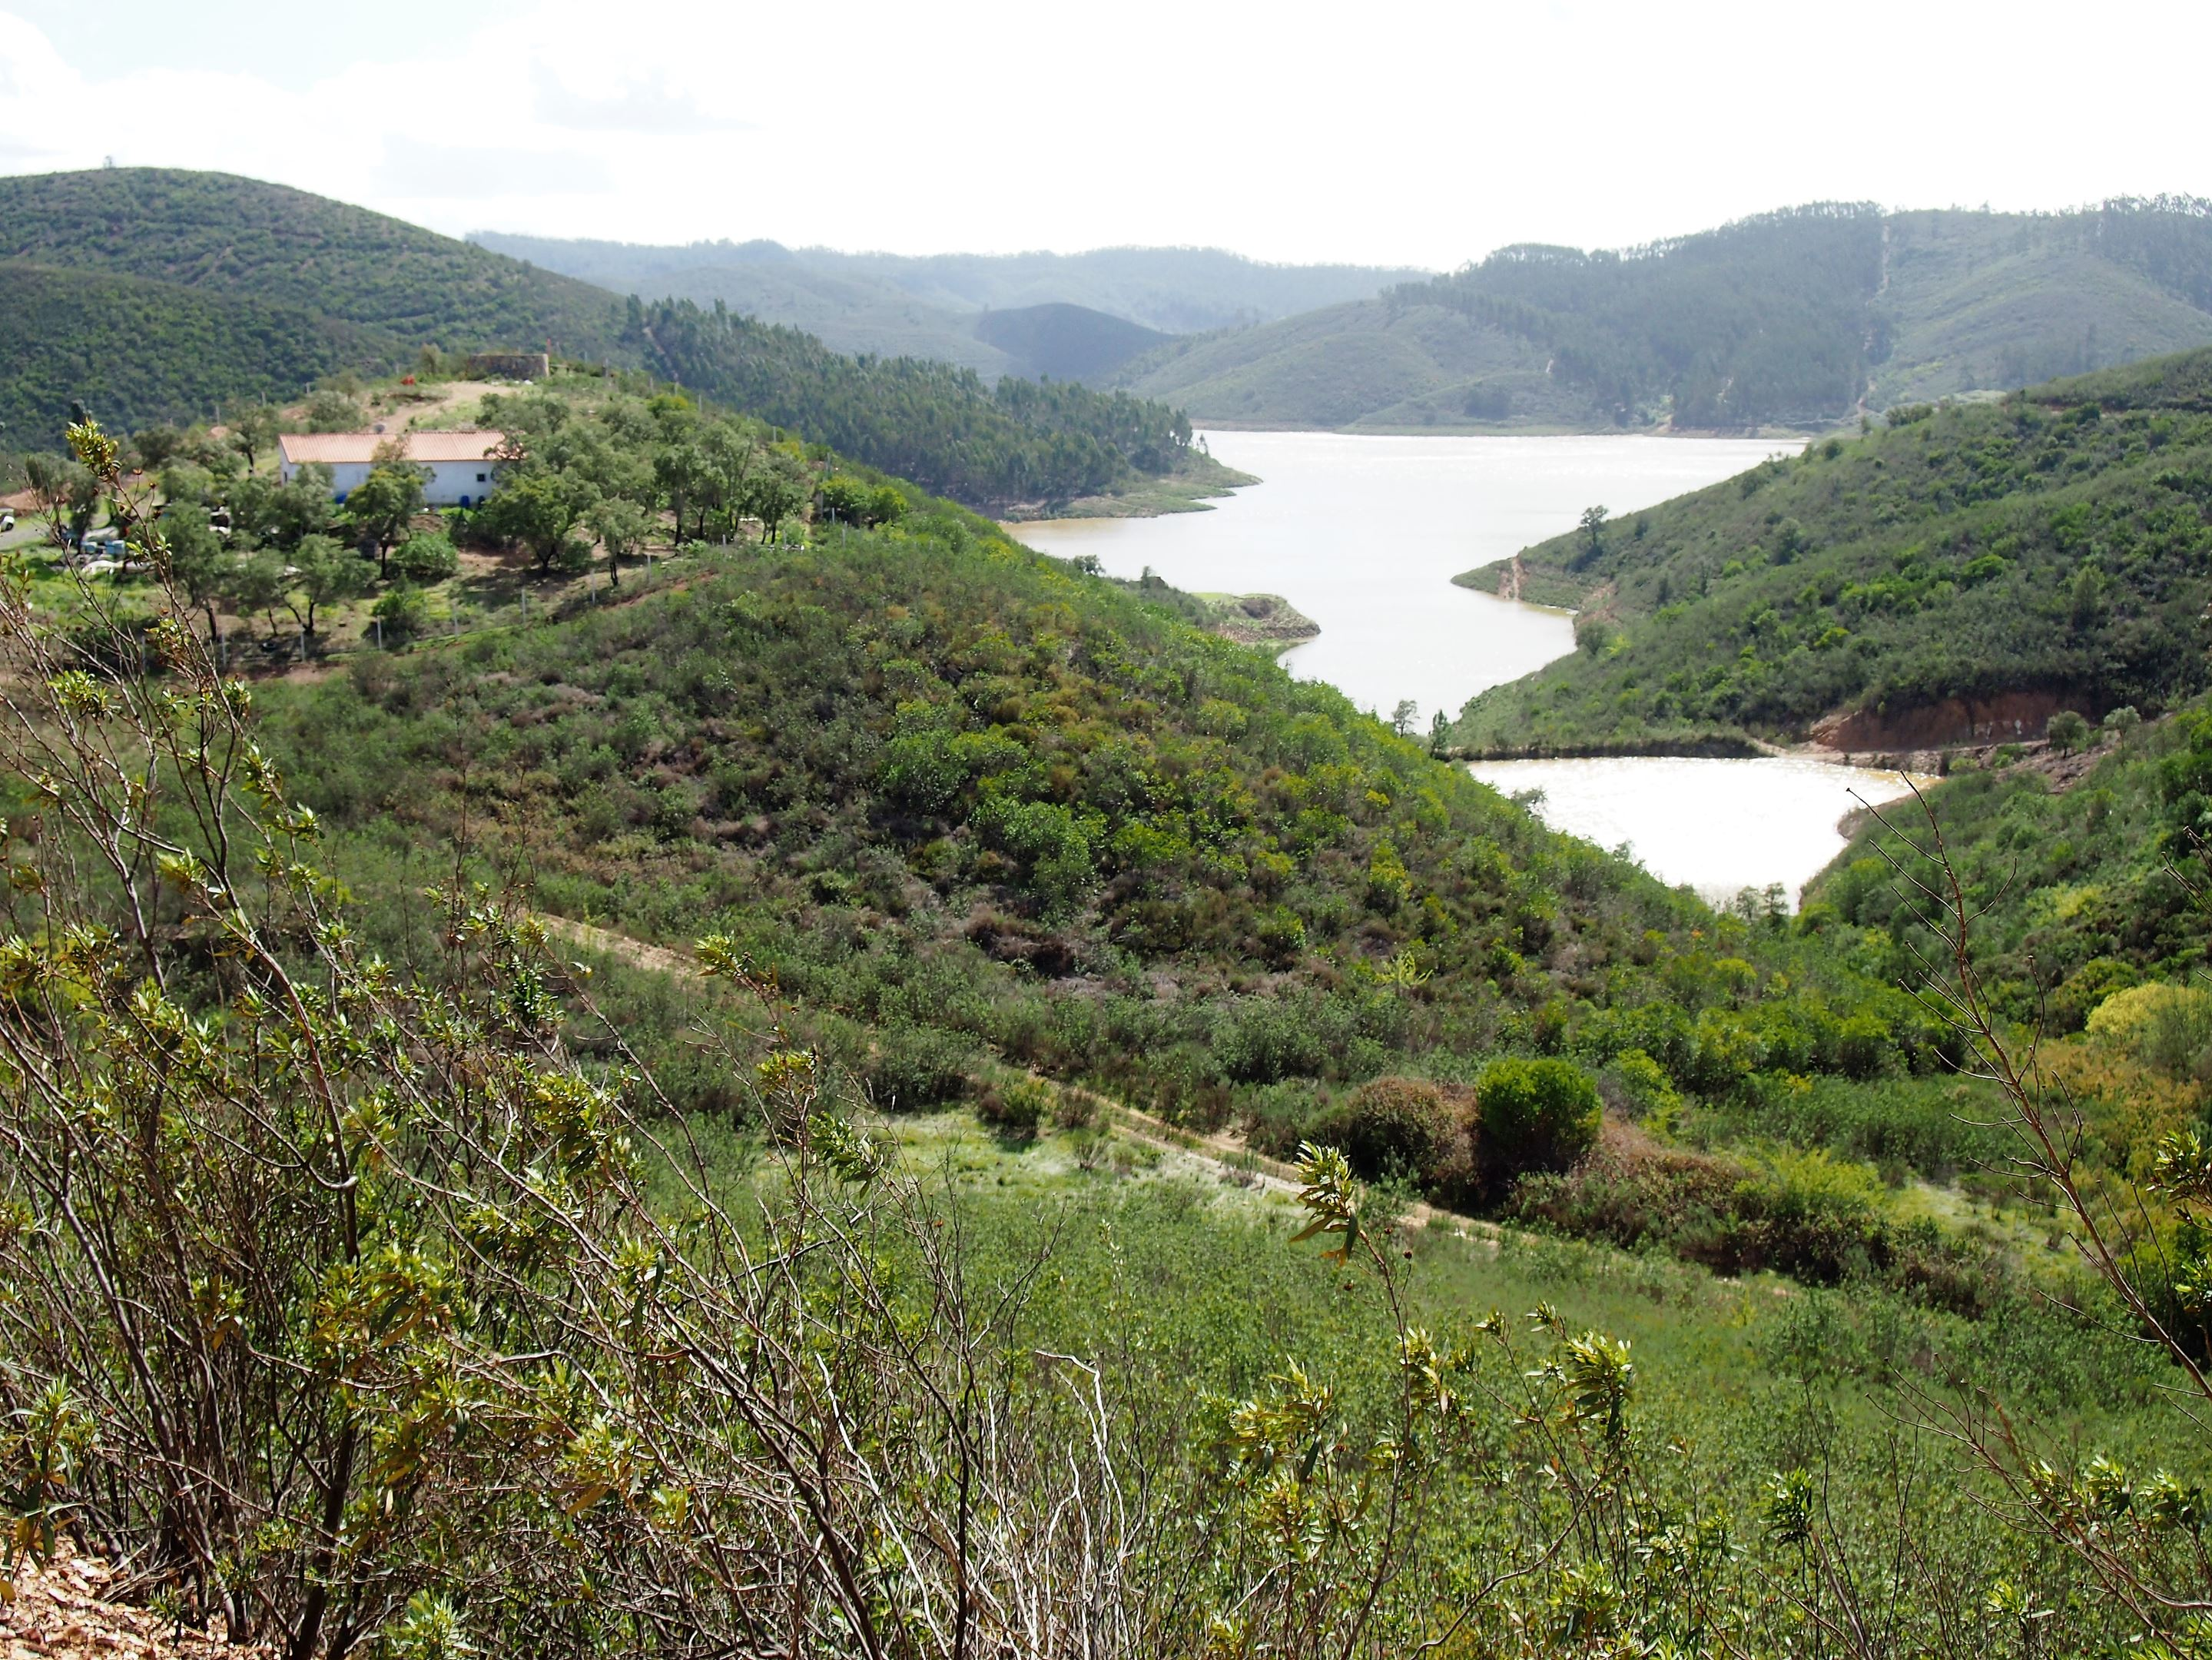 Odelouca Dam, accessible only by walking or a dirt track.